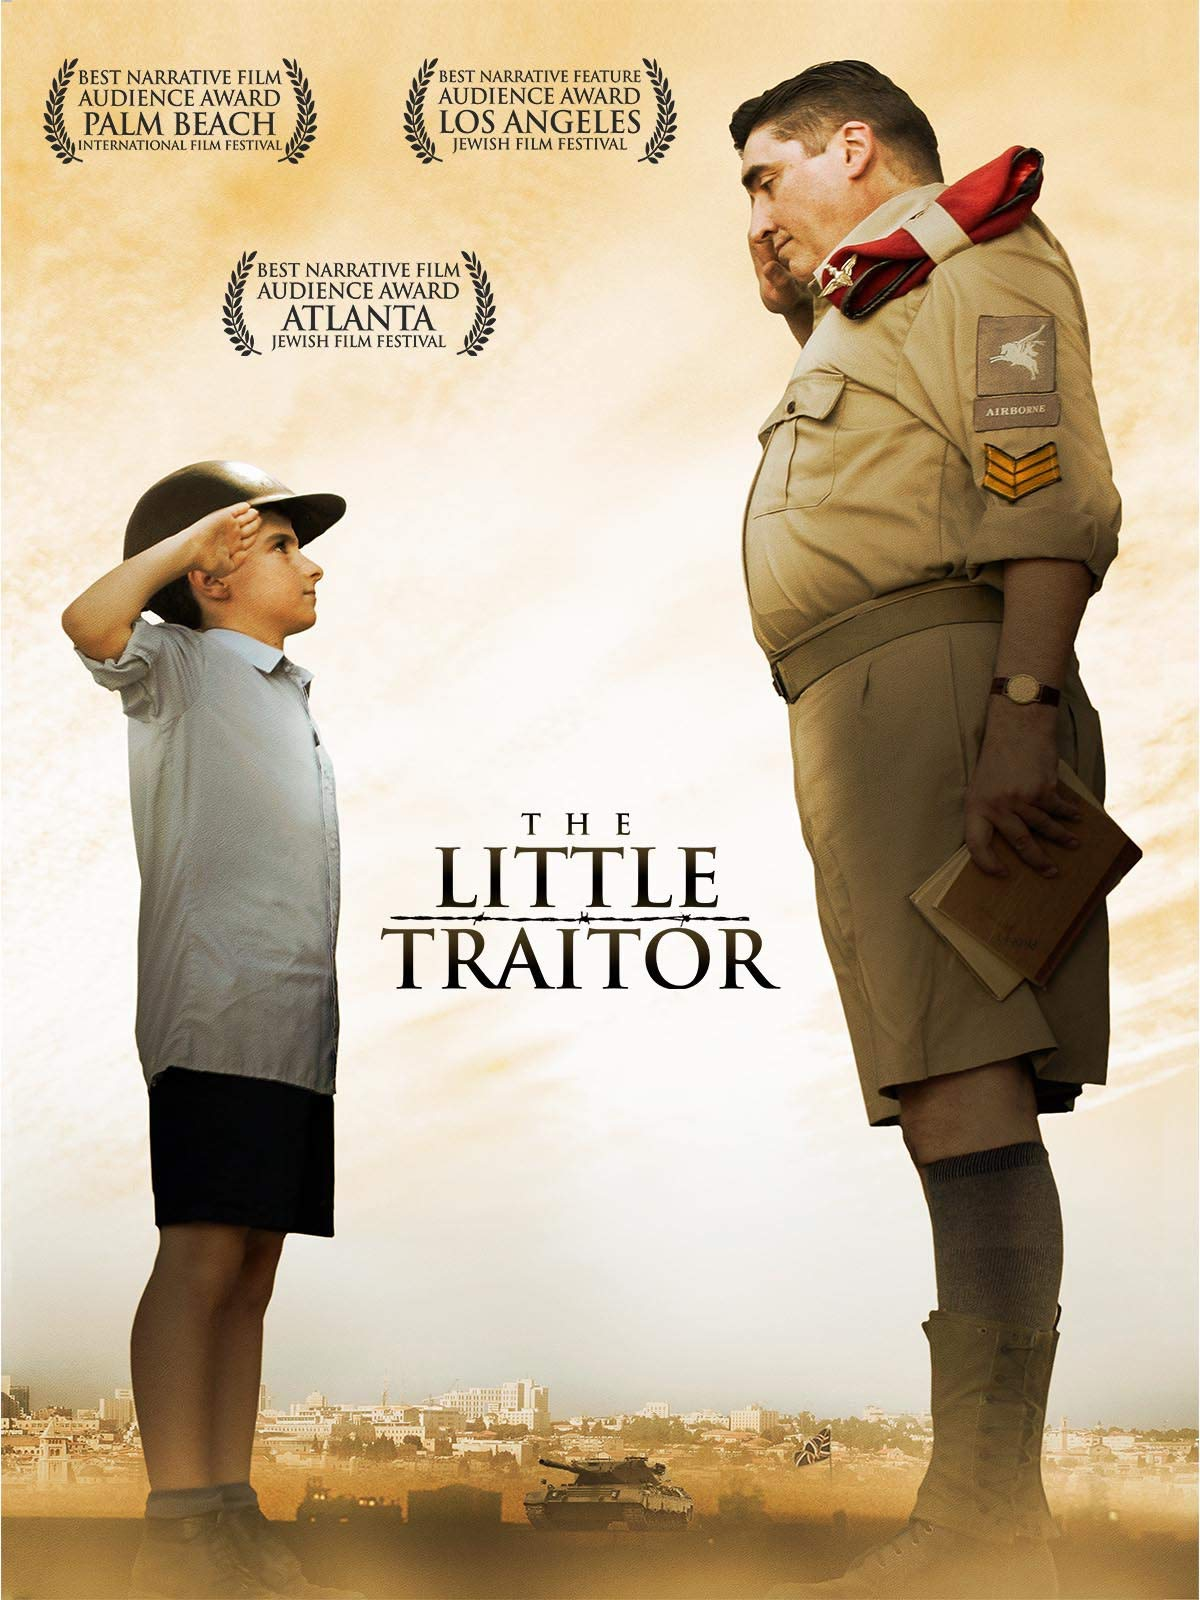 The Little Traitor